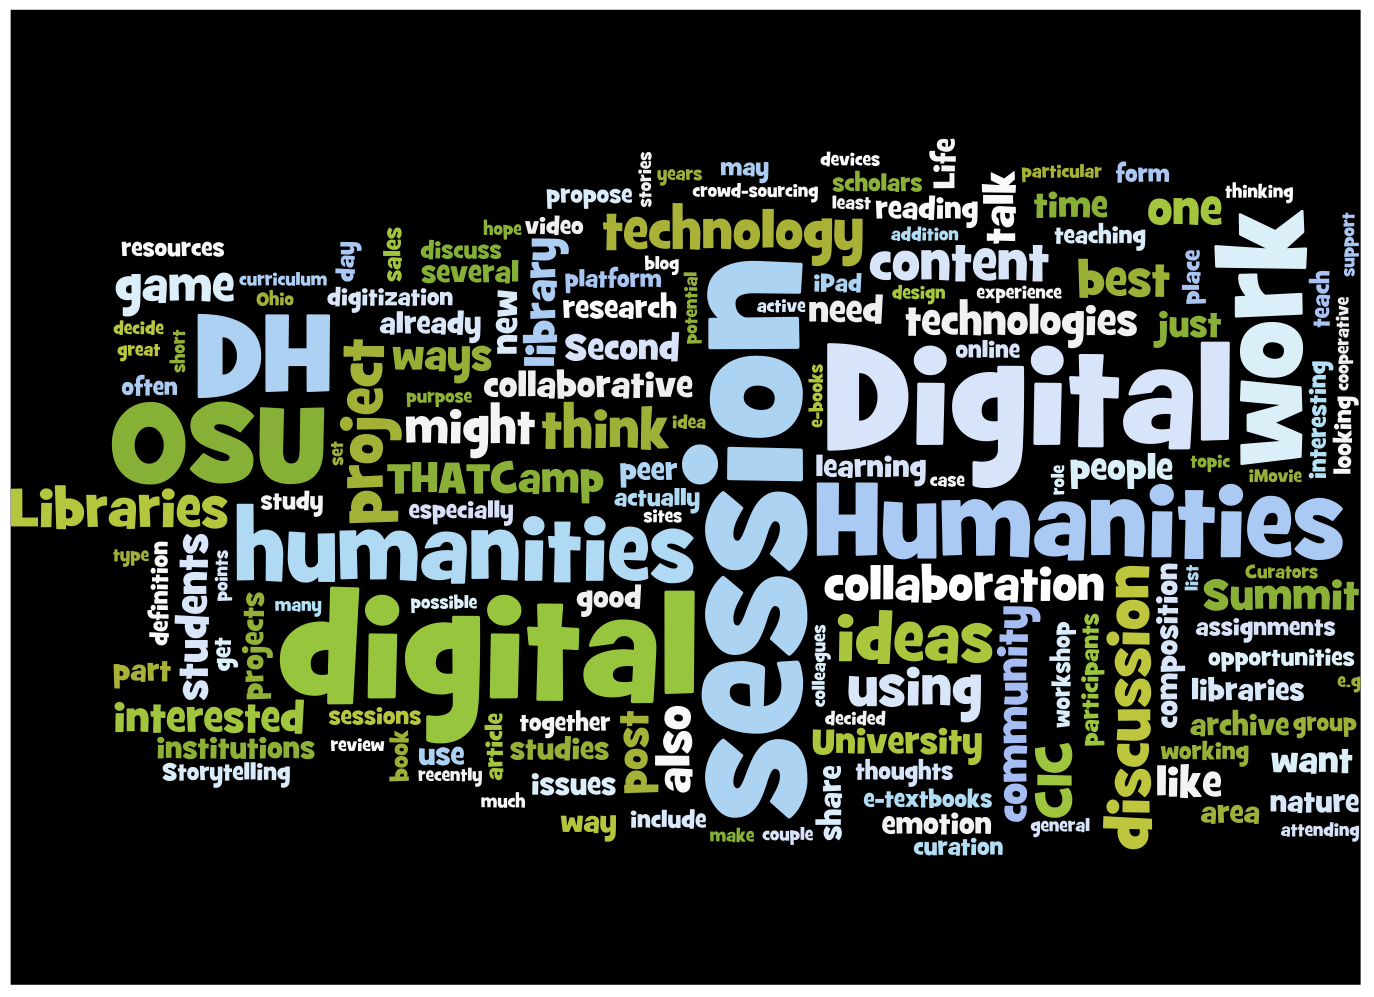 Wordle drawn from session proposals